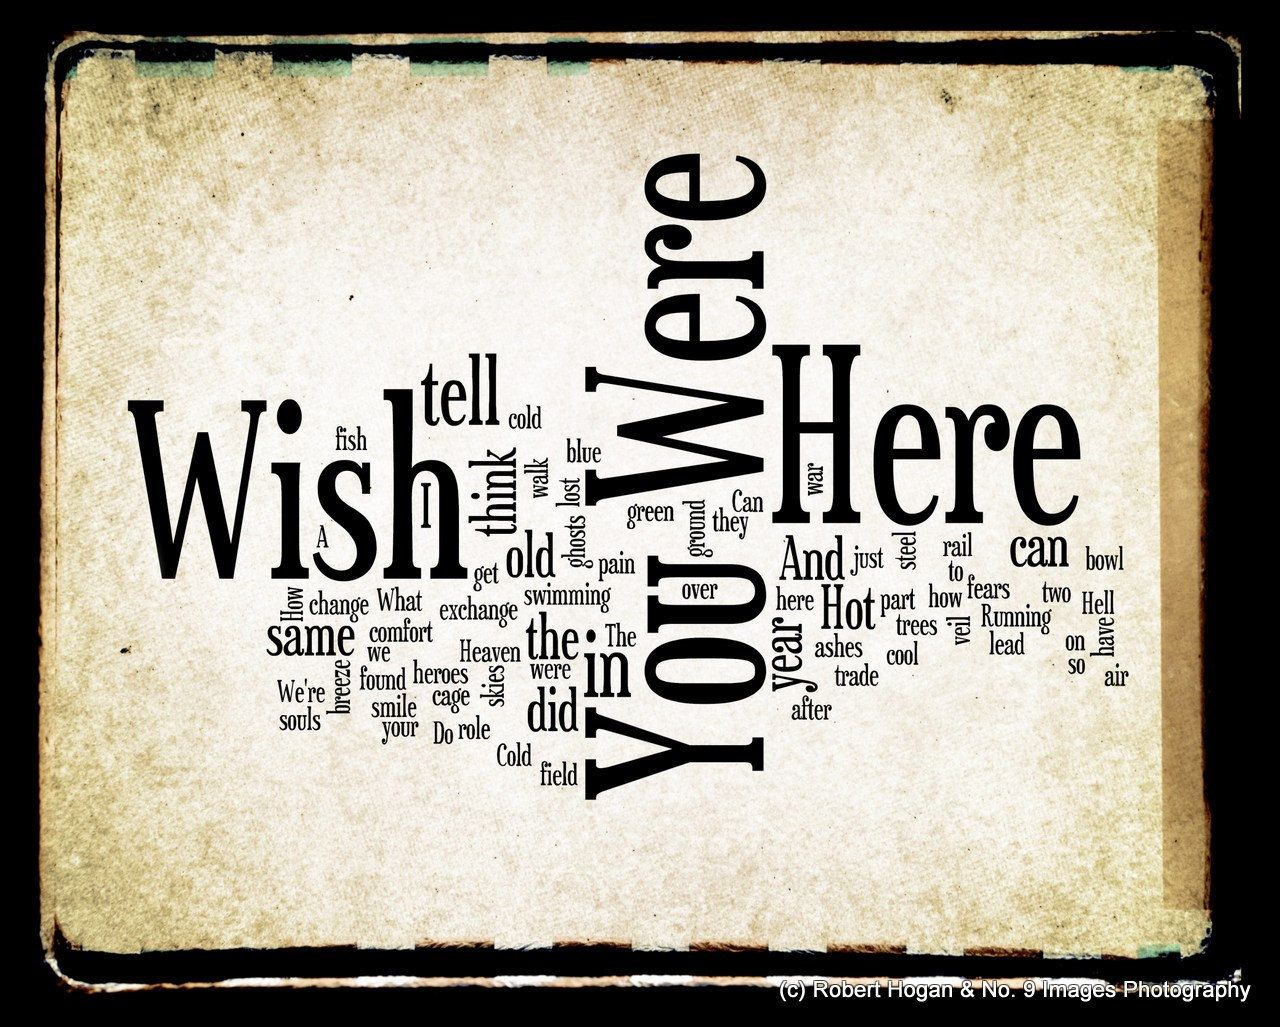 Wish You Were Here Quotes Wish You Were Here Lyrics Pink Floyd Word Art Wordno9Images